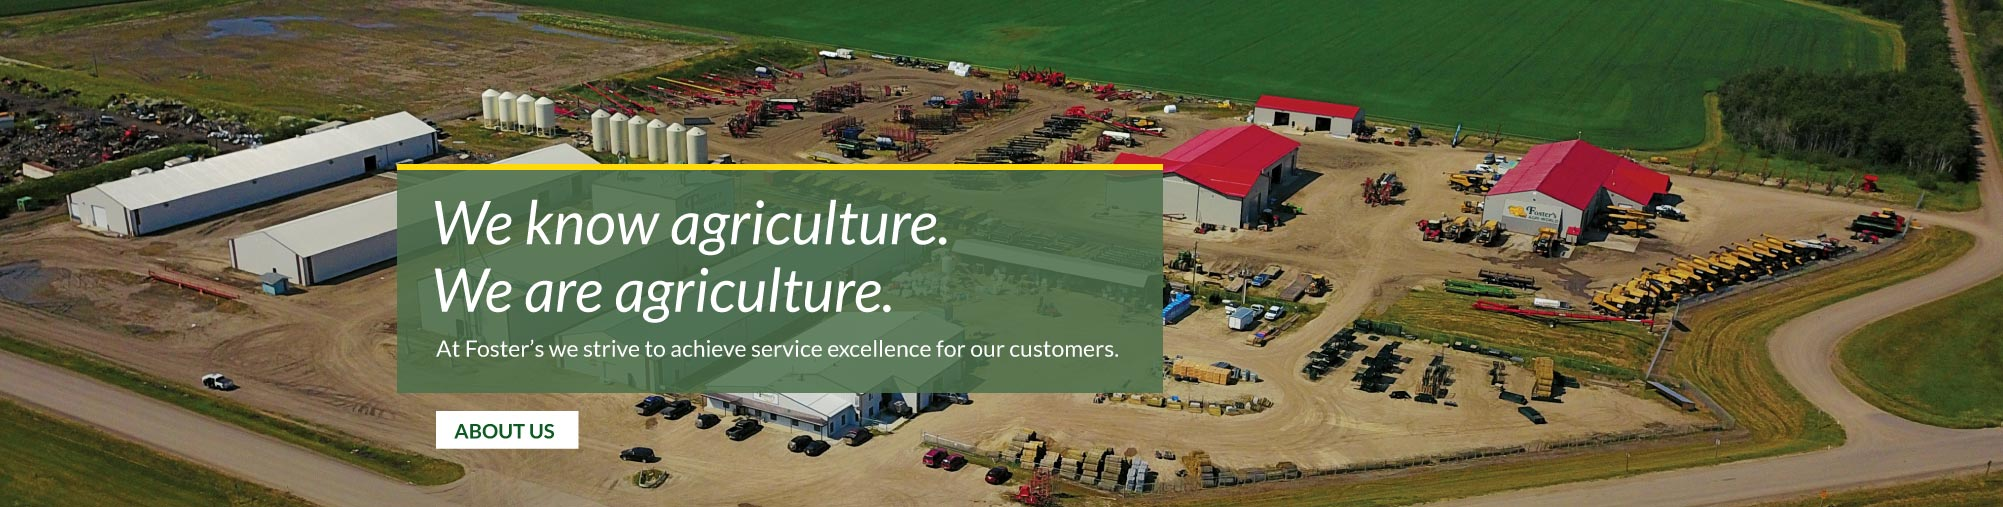 Foster's Canada - Seed & Feed, Farm Equipment Sales, Auto Parts and more!